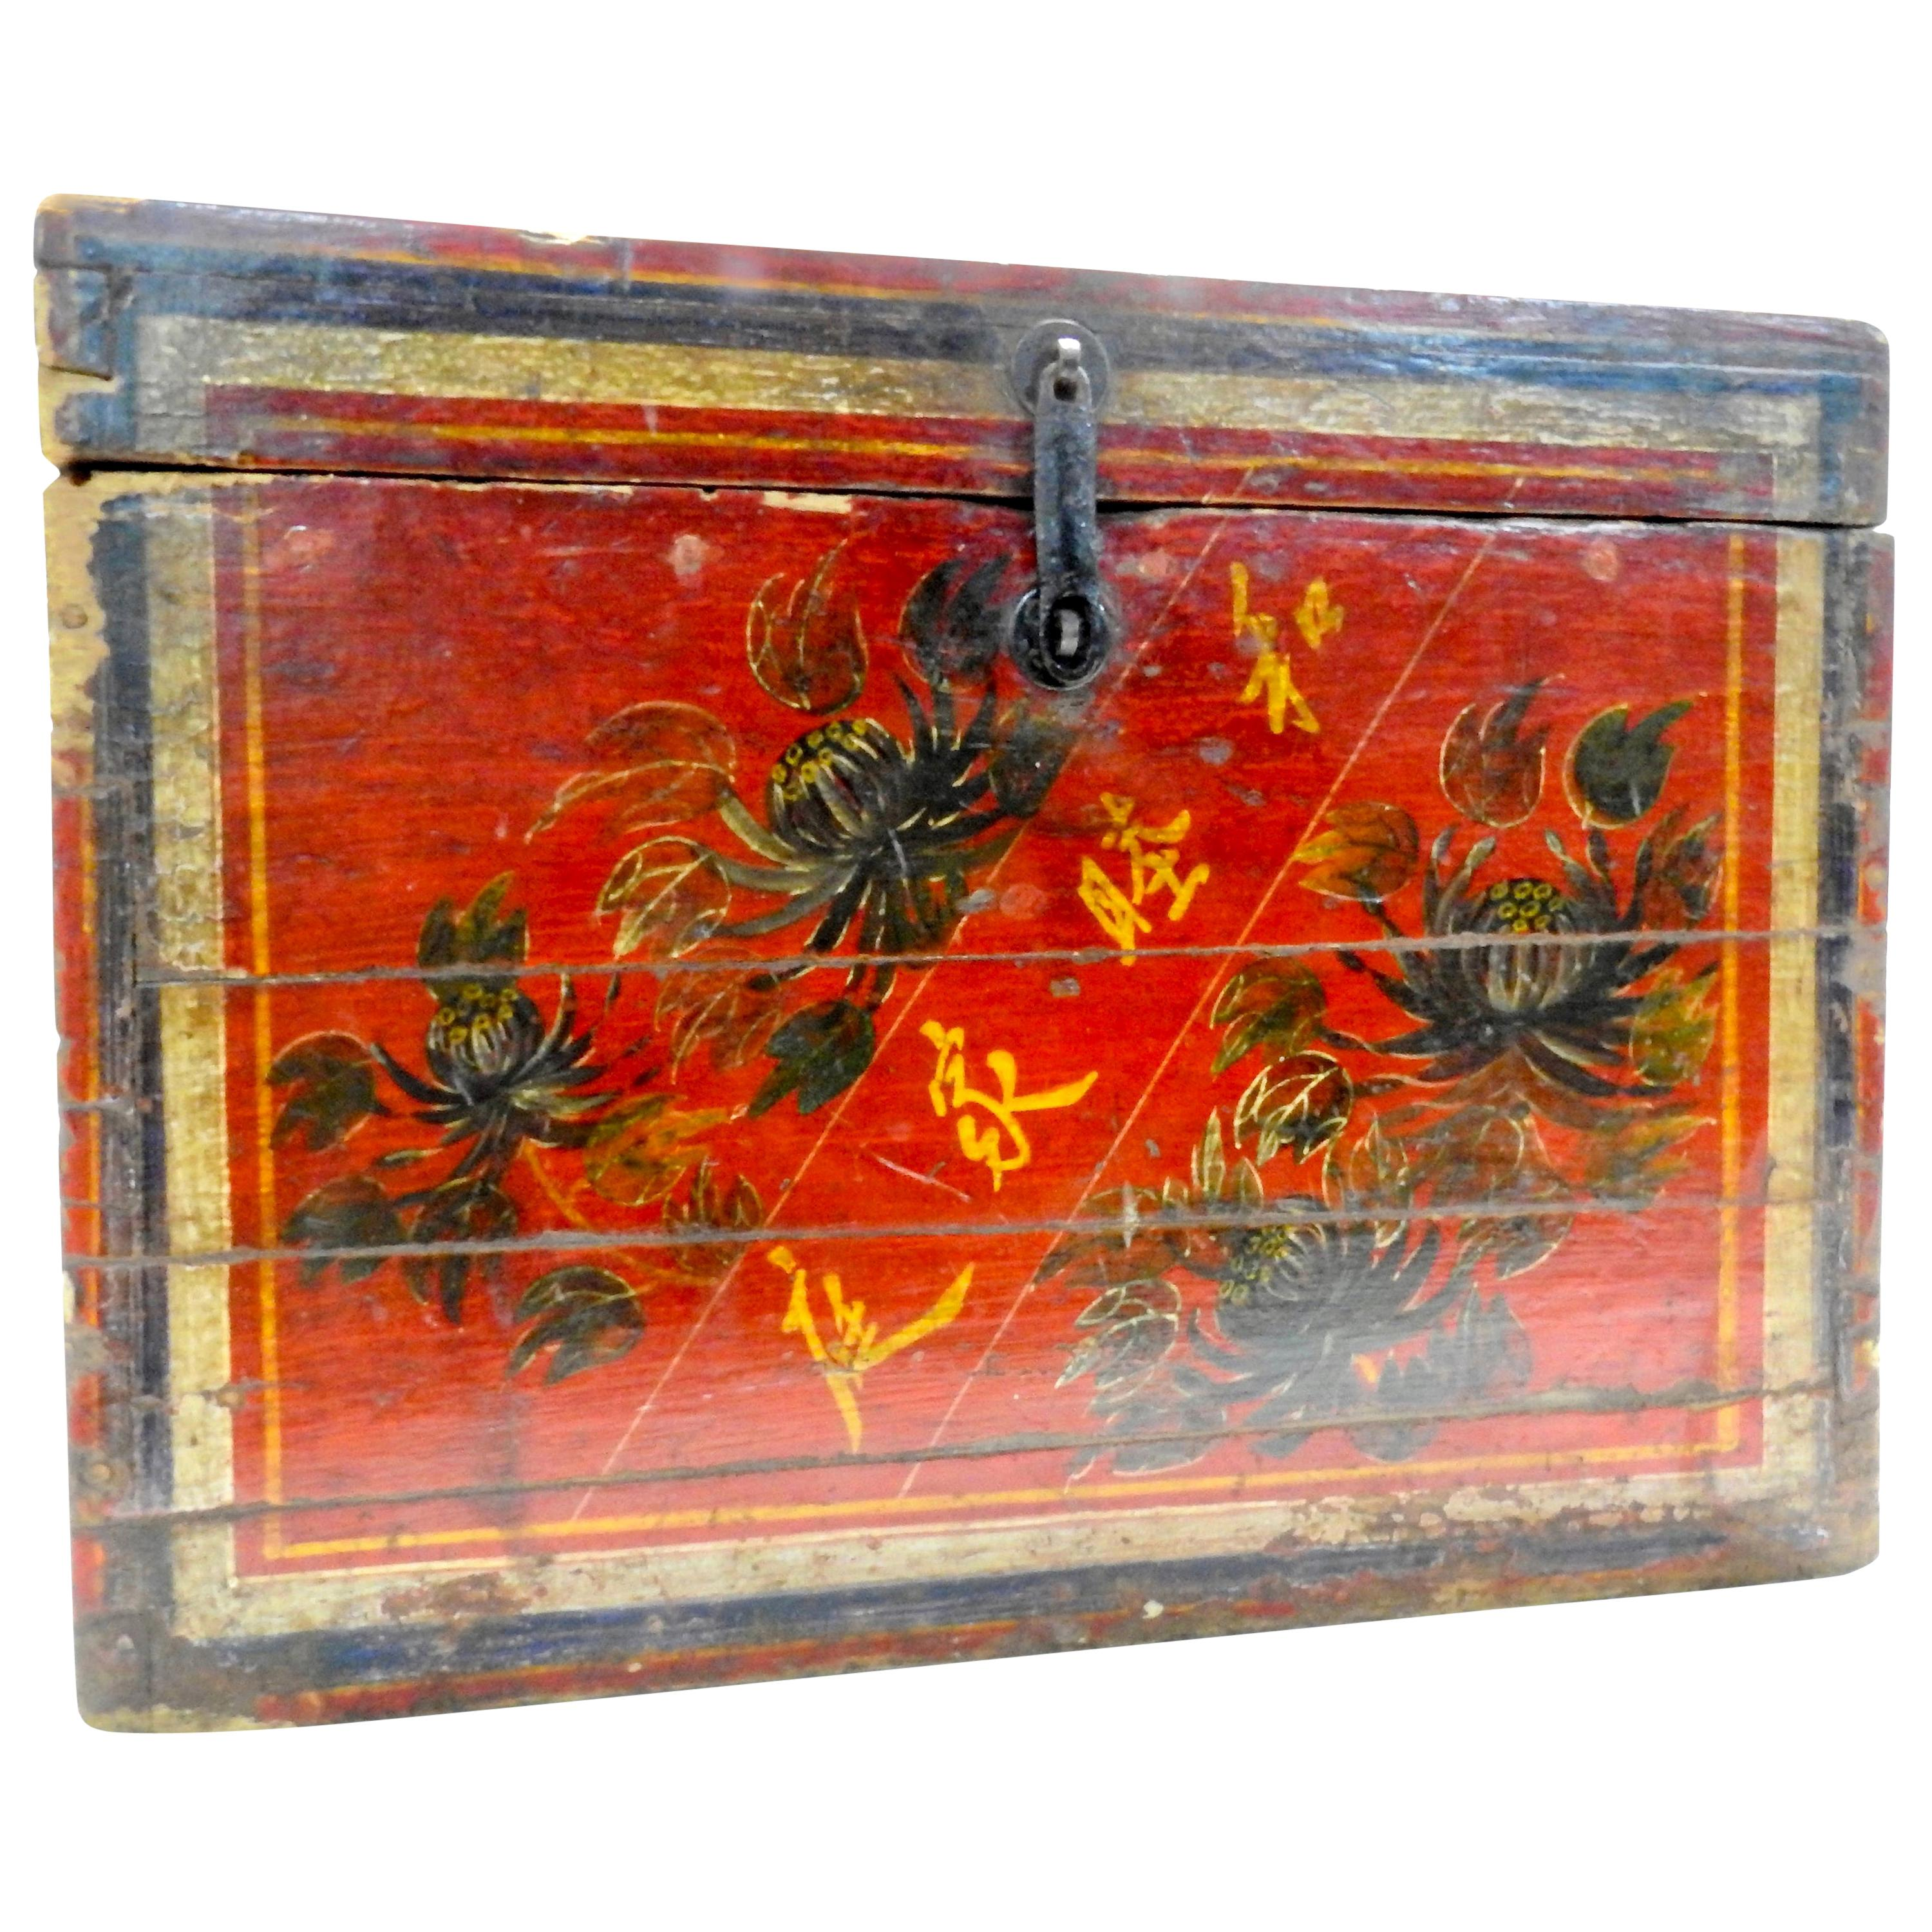 Chinese Storage Chest Hand Painted, Late 19th Century